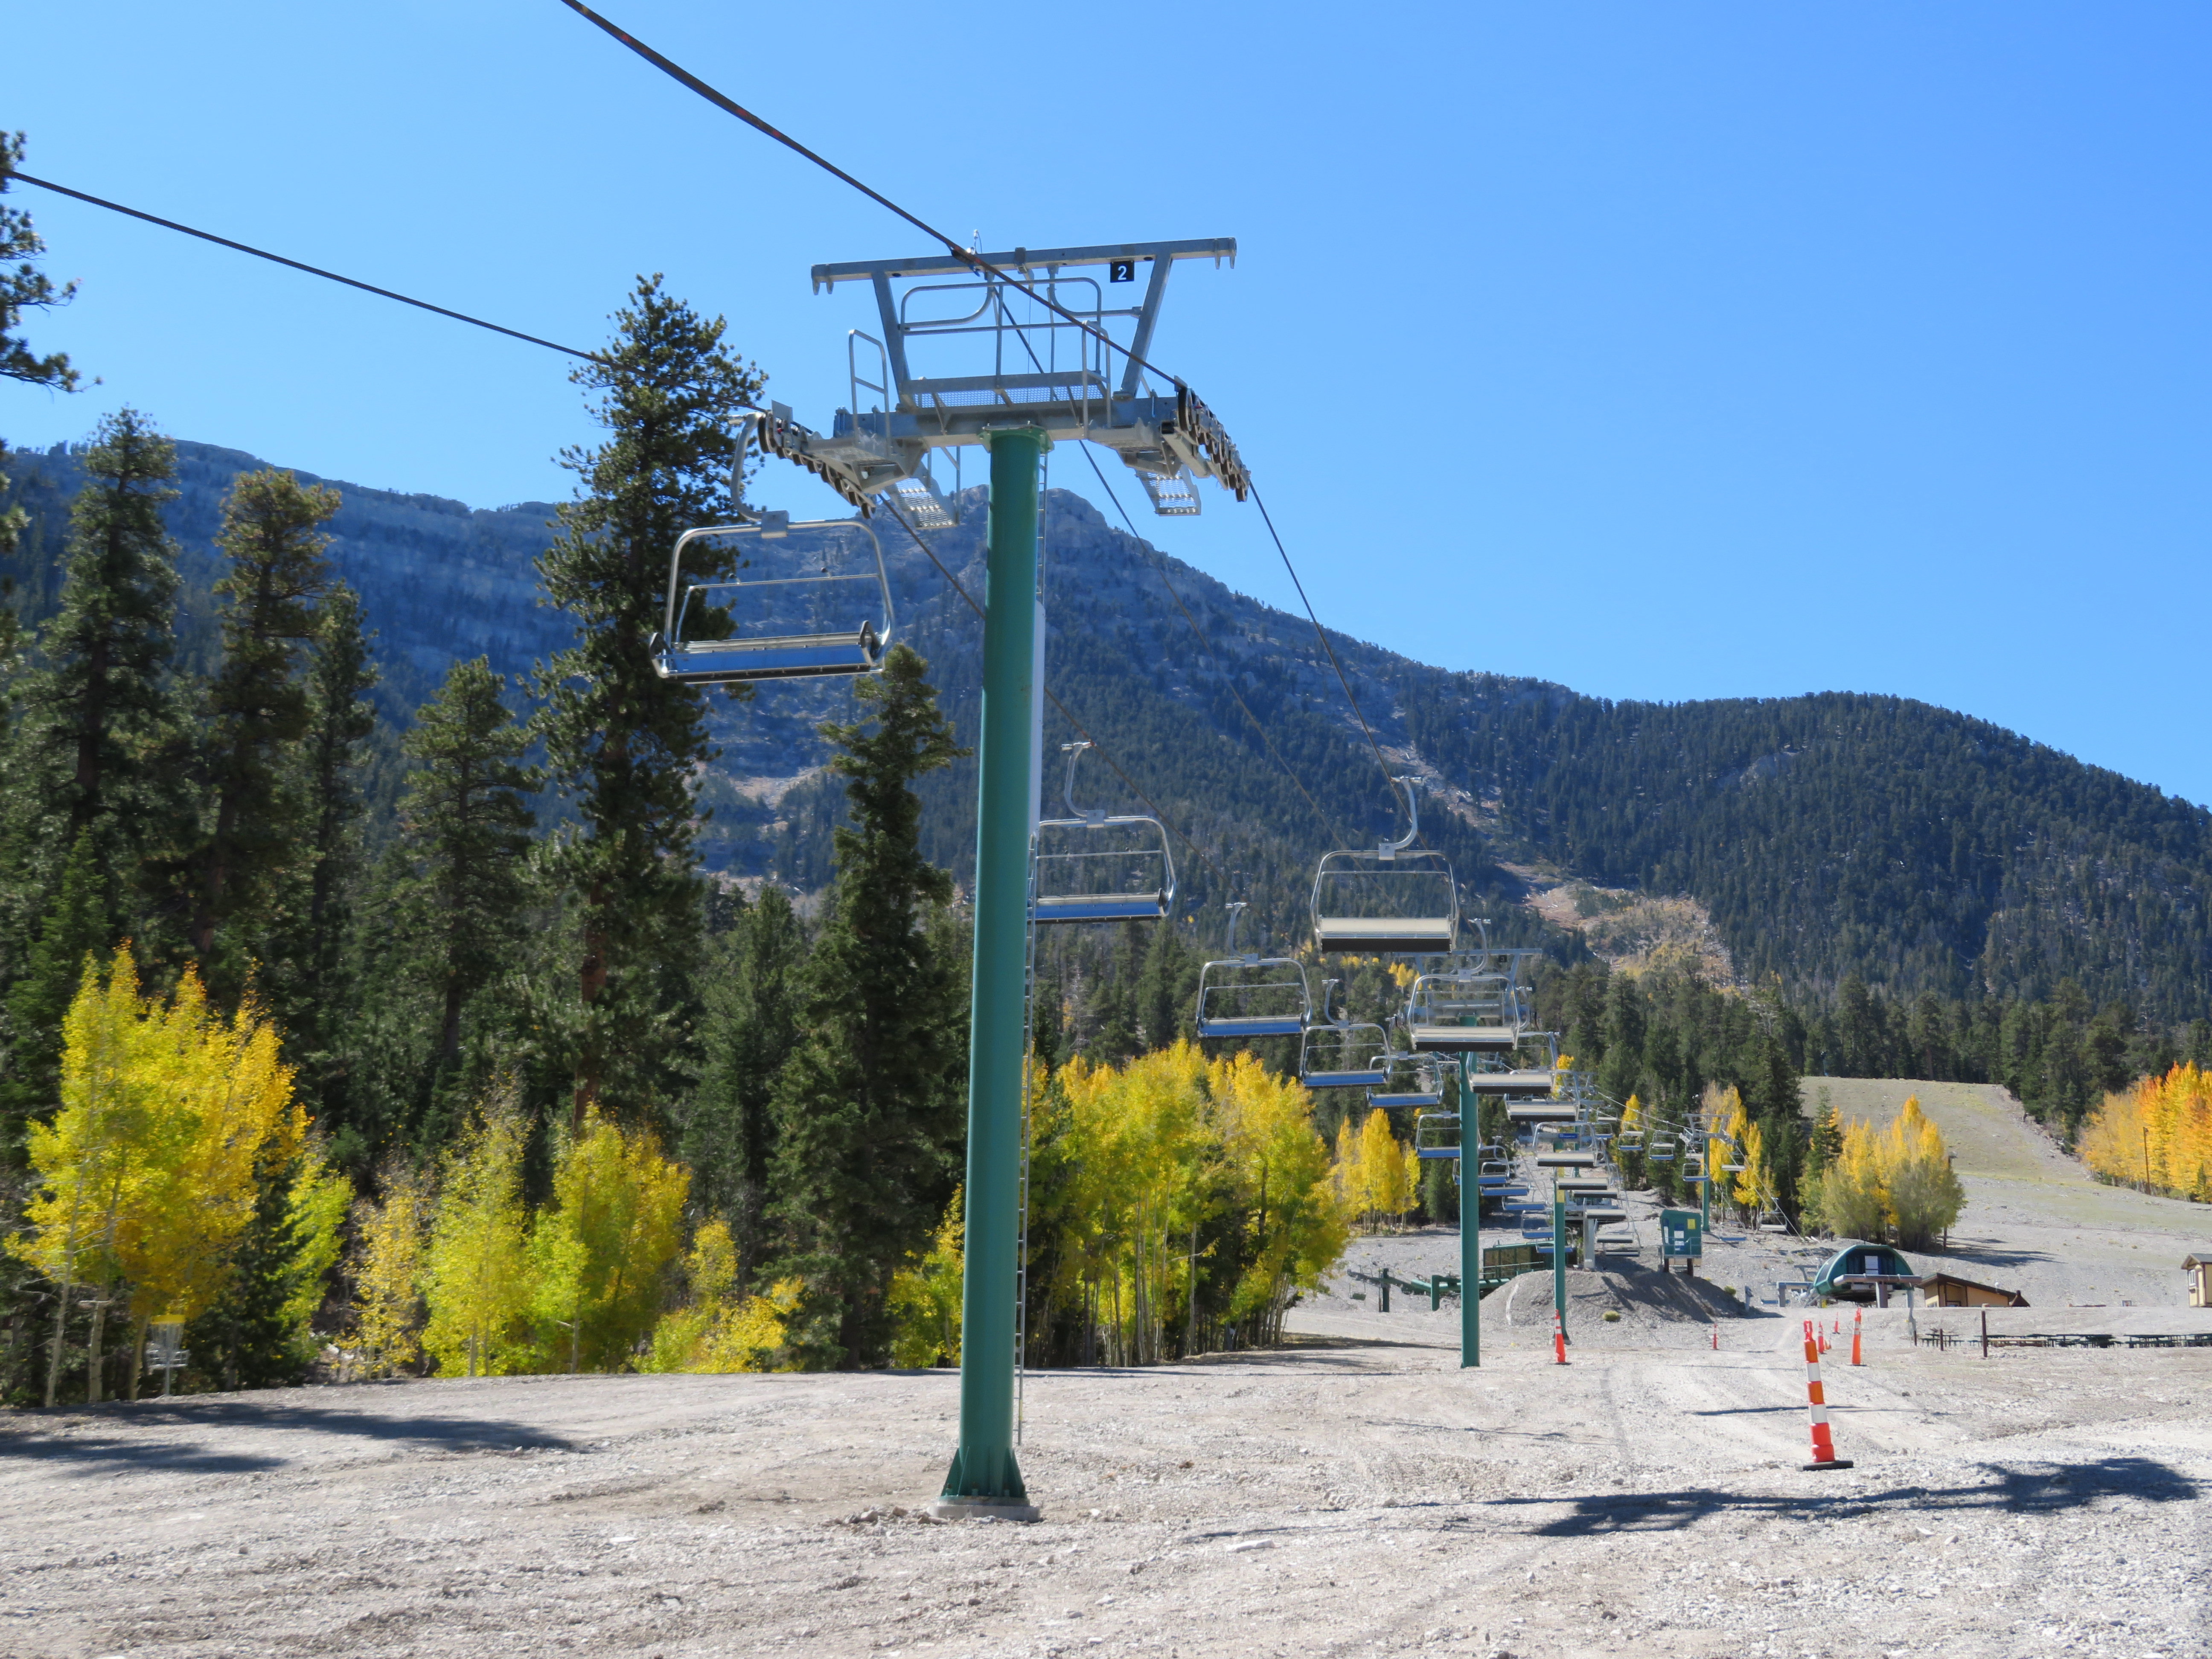 lee canyon inches closer to new lifts – lift blog